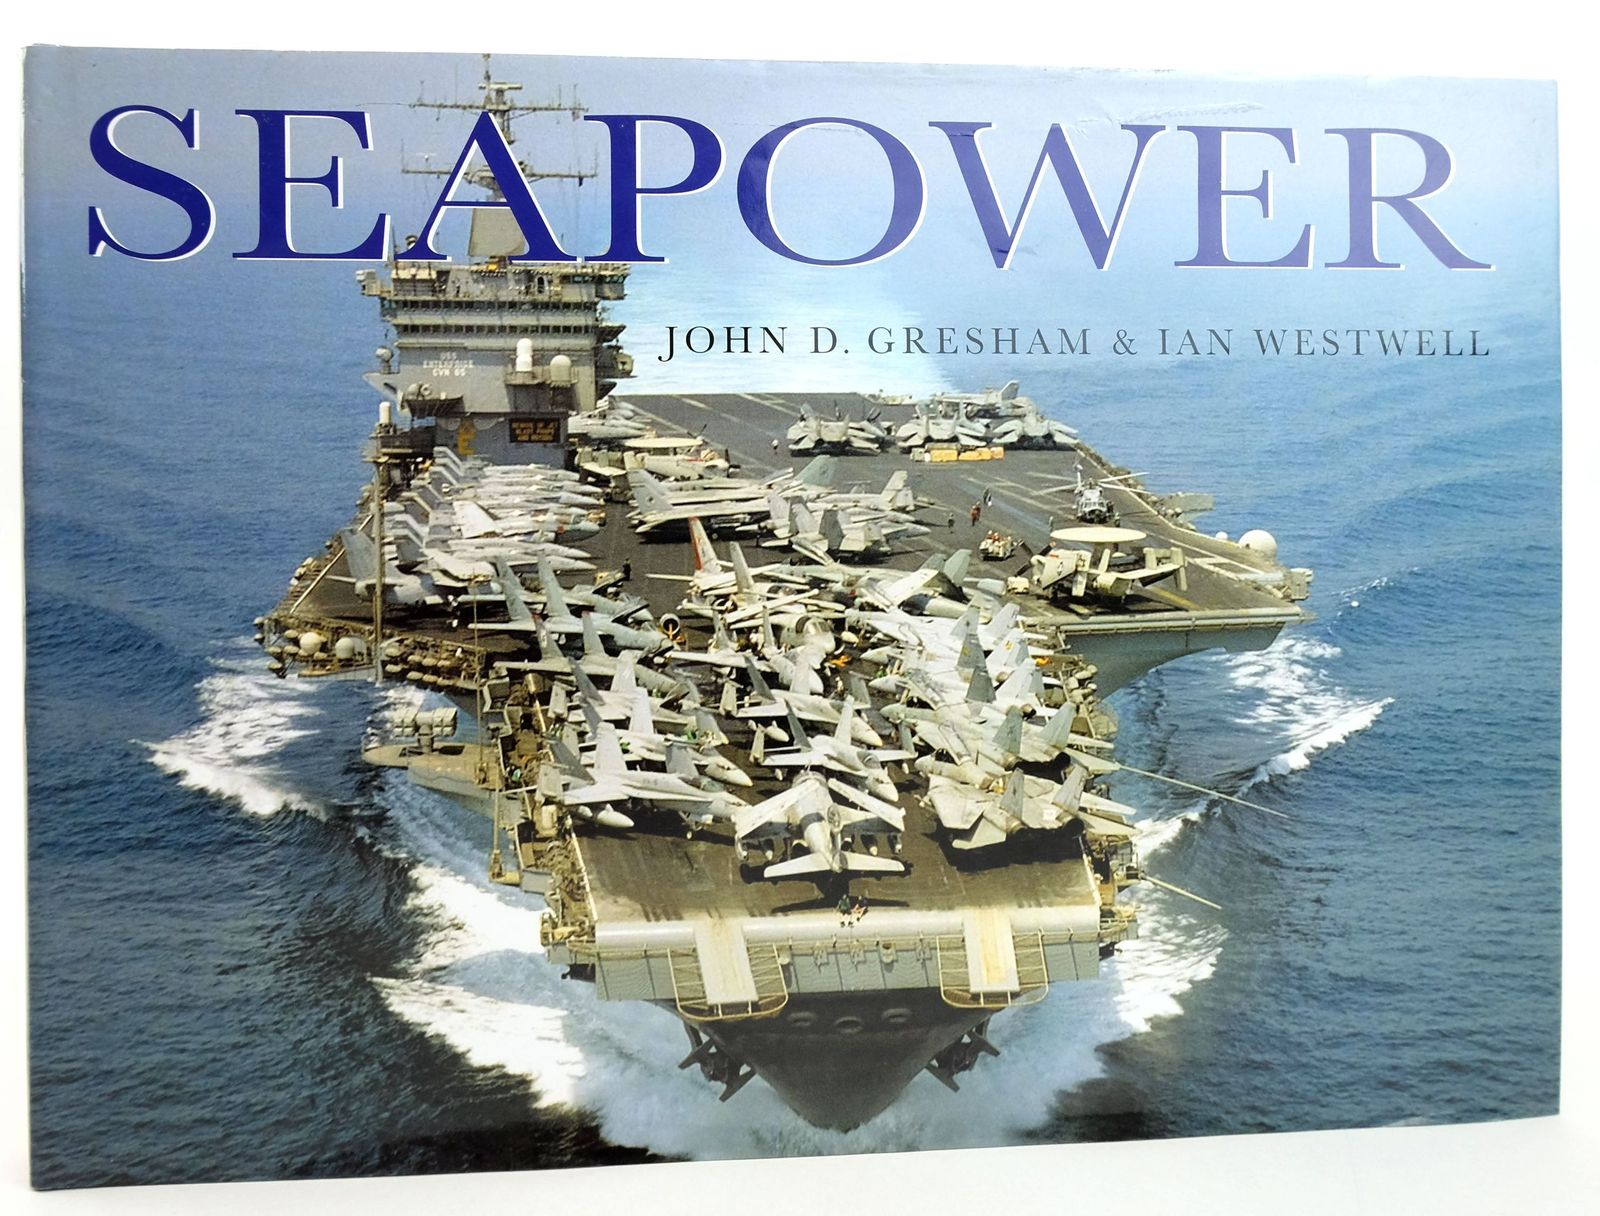 Photo of SEAPOWER written by Gresham, John Westwell, Ian published by Chartwell Books Inc. (STOCK CODE: 1820074)  for sale by Stella & Rose's Books